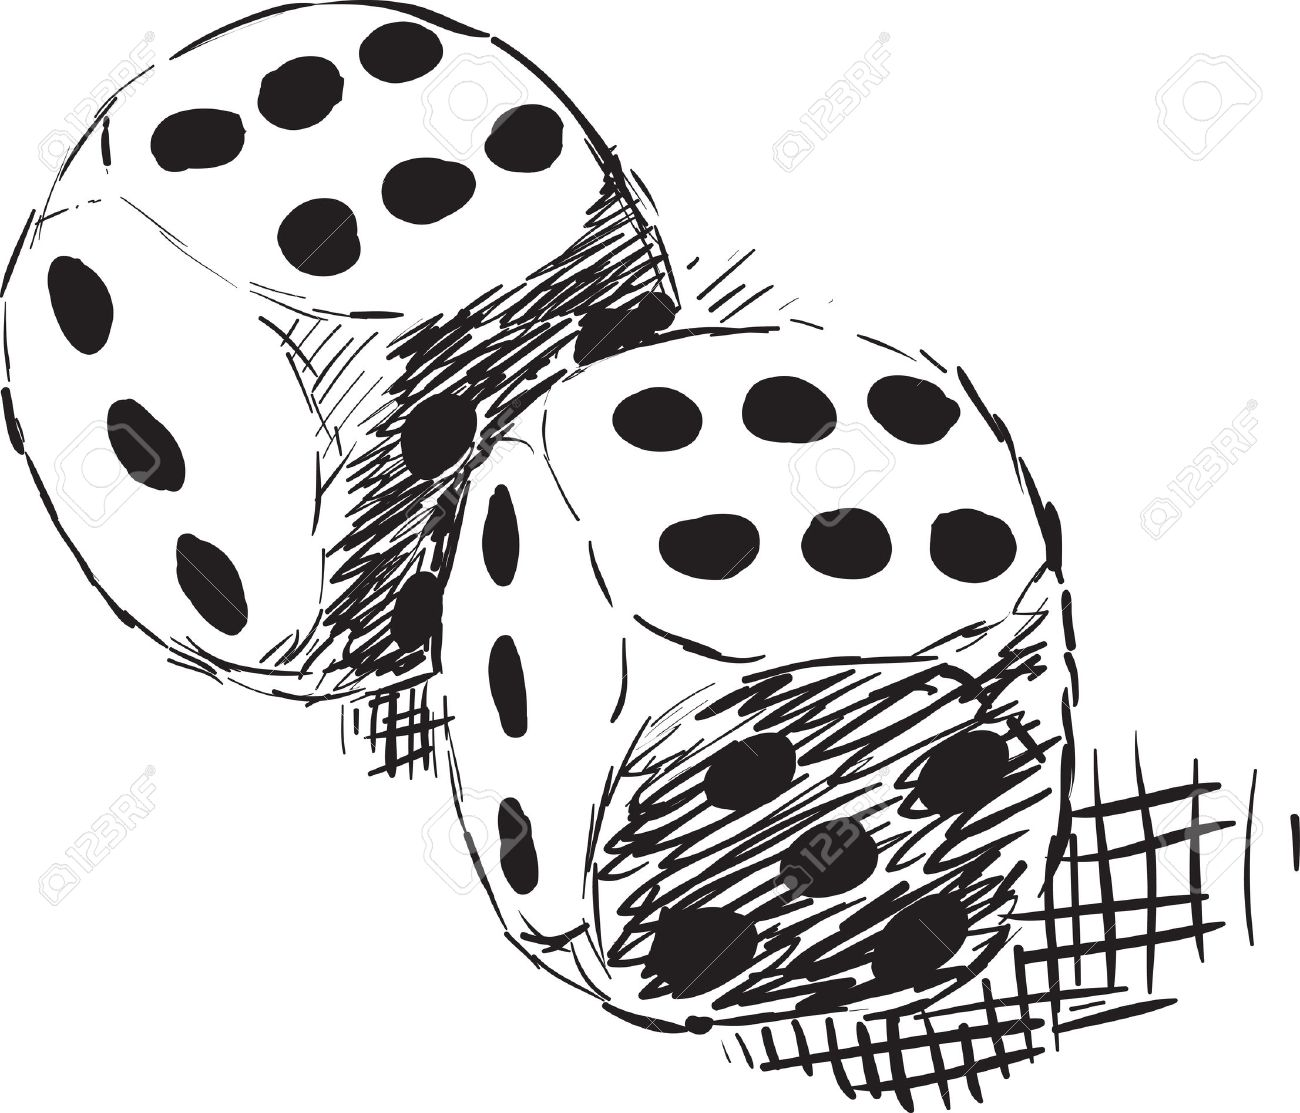 Rough monochrome sketch - two dices on white Stock Vector - 8850437